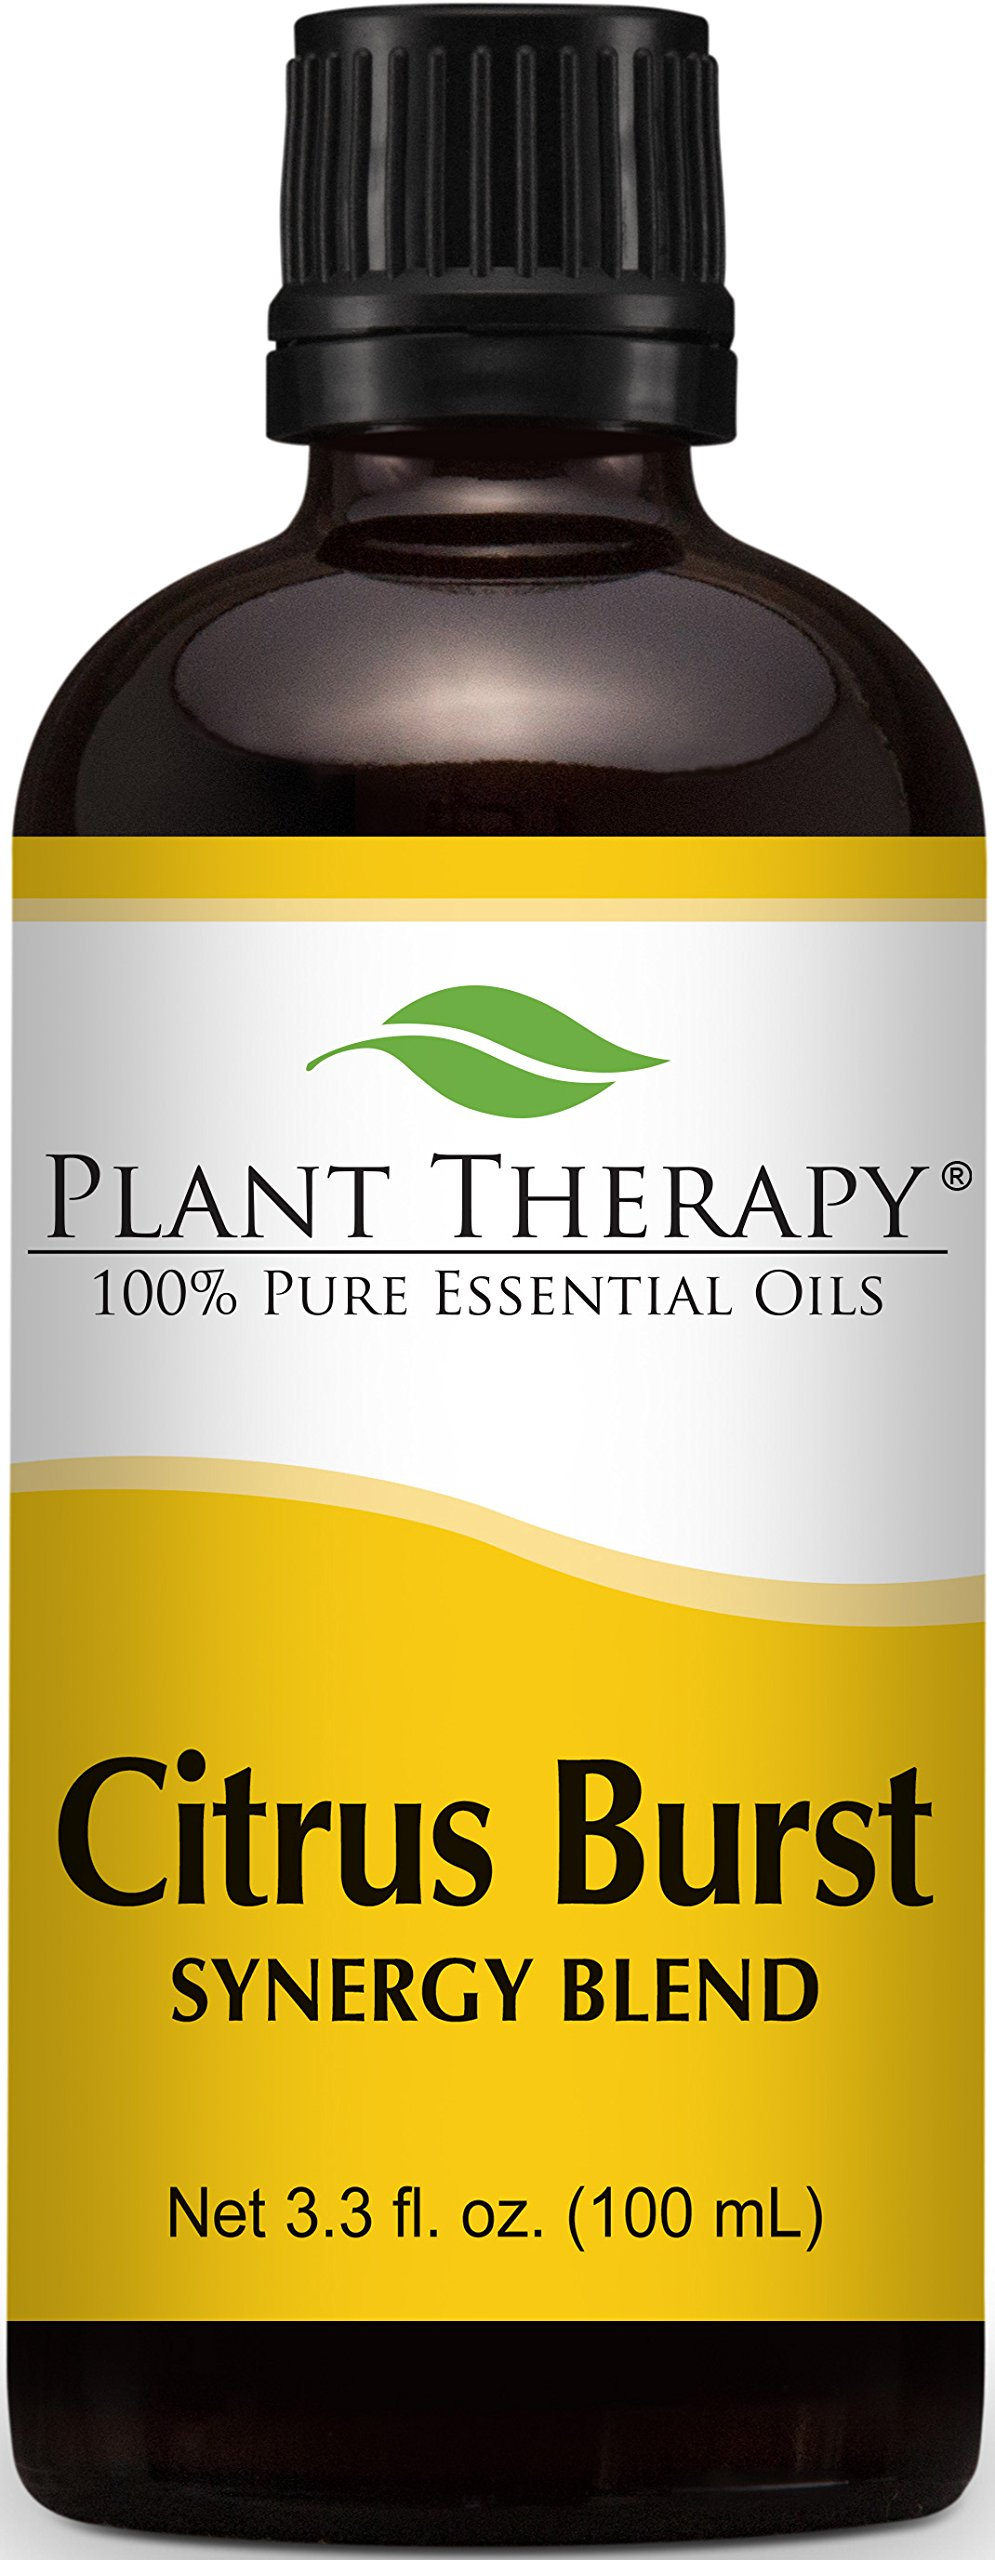 Plant Therapy Citrus Burst Synergy Essential Oil Blend 100 mL (3.3 oz) 100% Pure, Undiluted, Therapeutic Grade by Plant Therapy